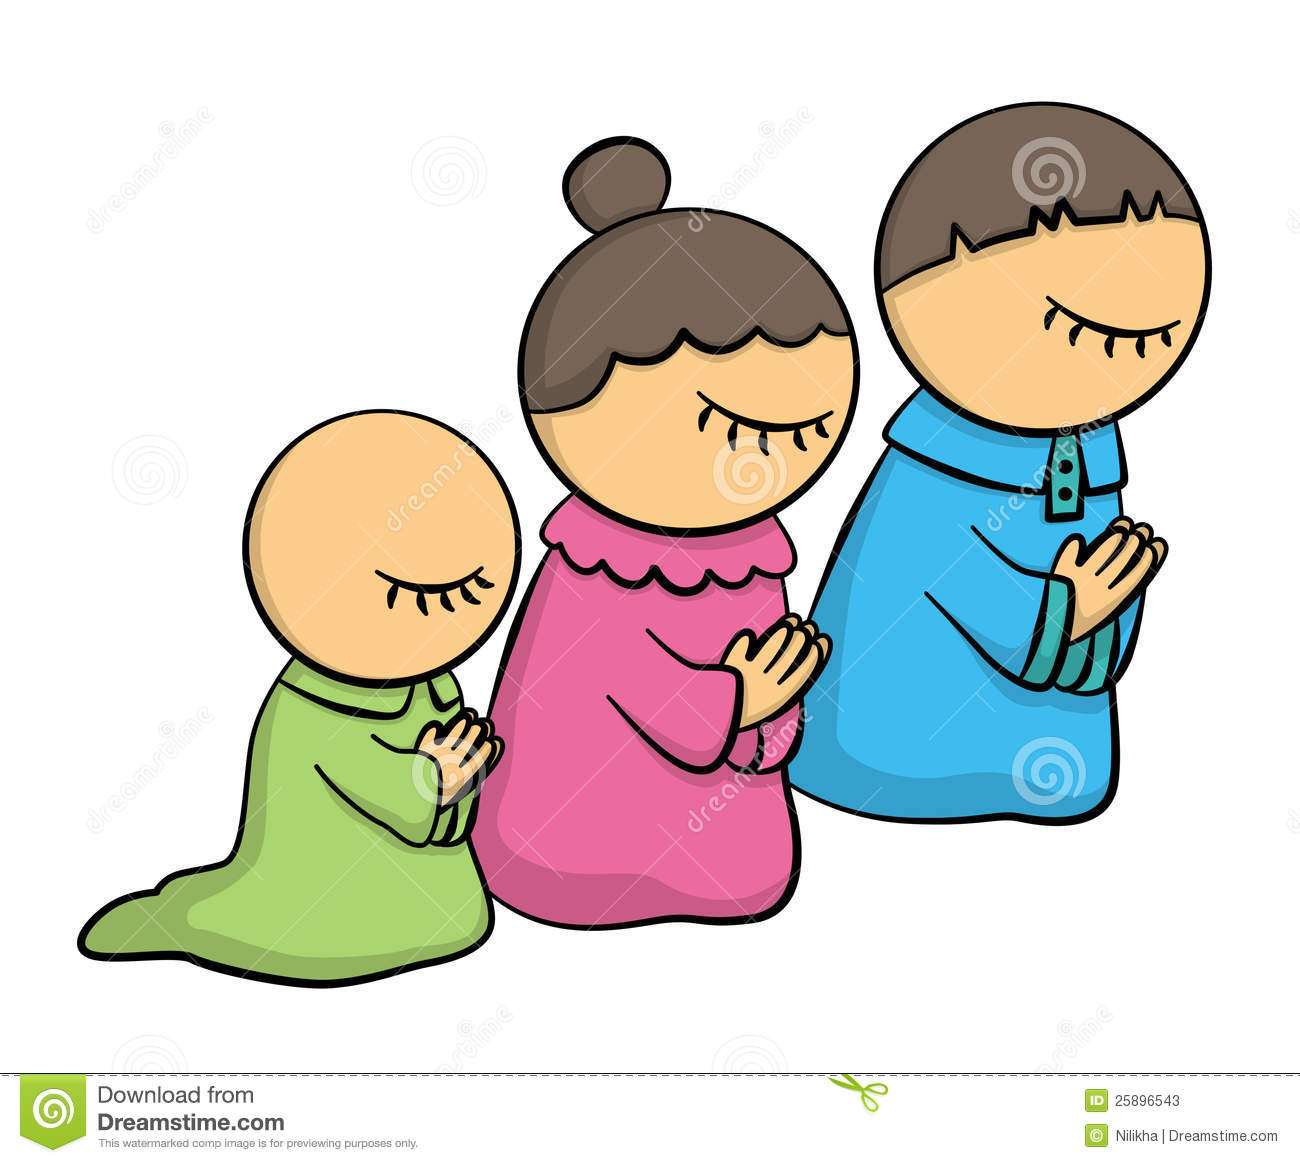 Kids praying clip art clipart images gallery for free.